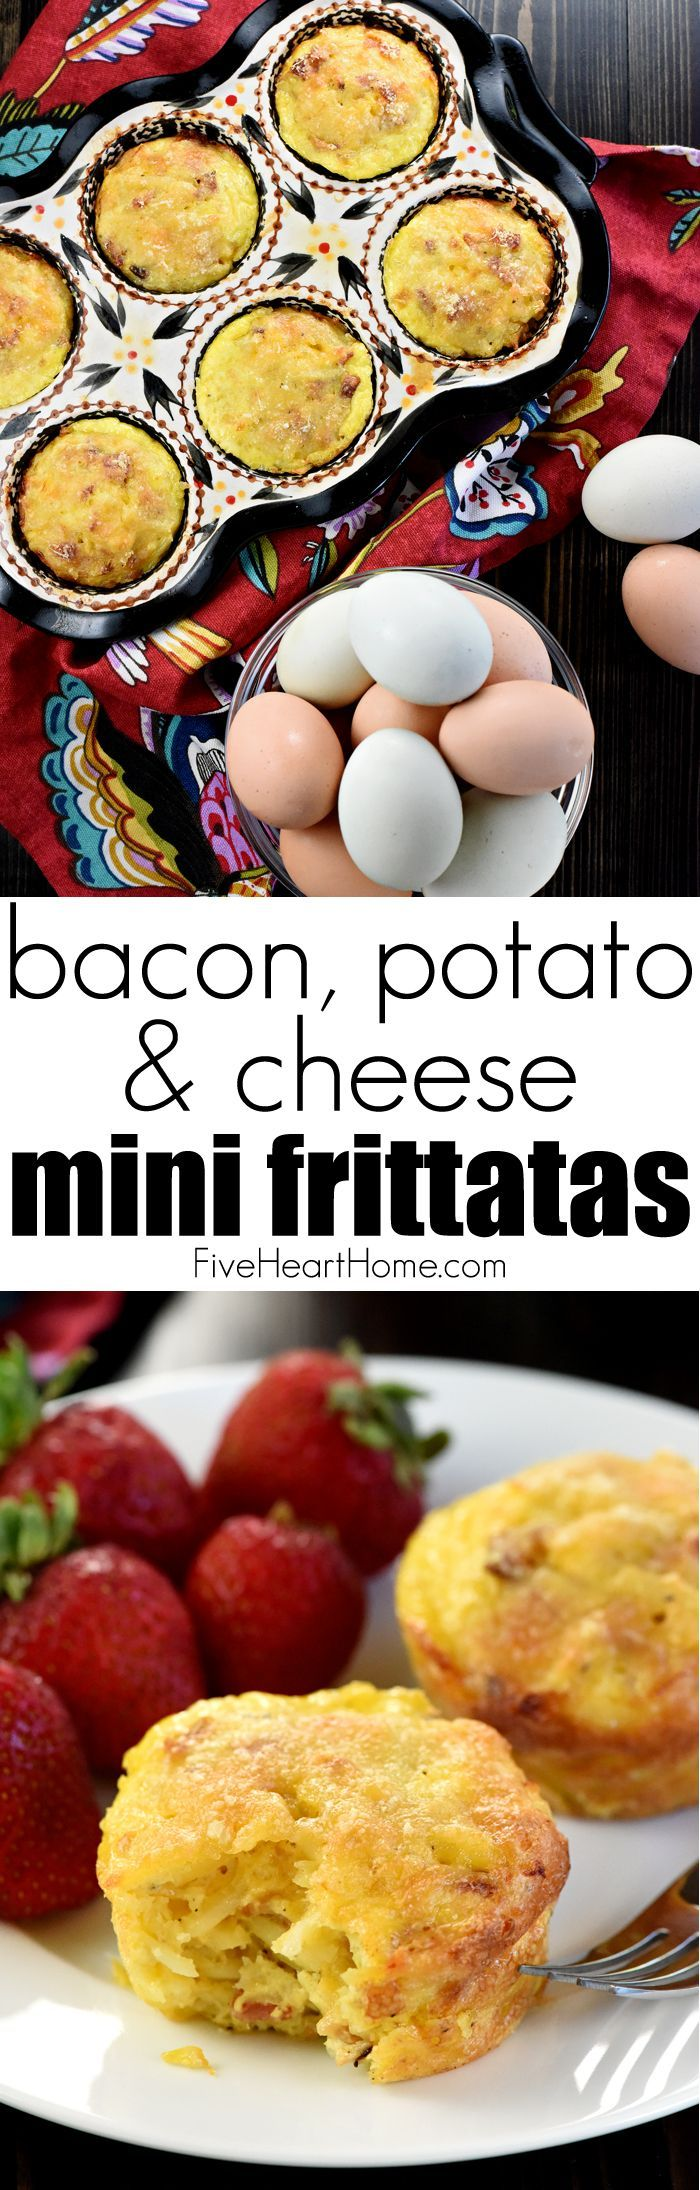 "Bacon, Potato, & Cheese Mini Frittatas ~ savory, fluffy ""egg muffins"" loaded with crispy diced bacon, hash browns, and grated cheddar and…"